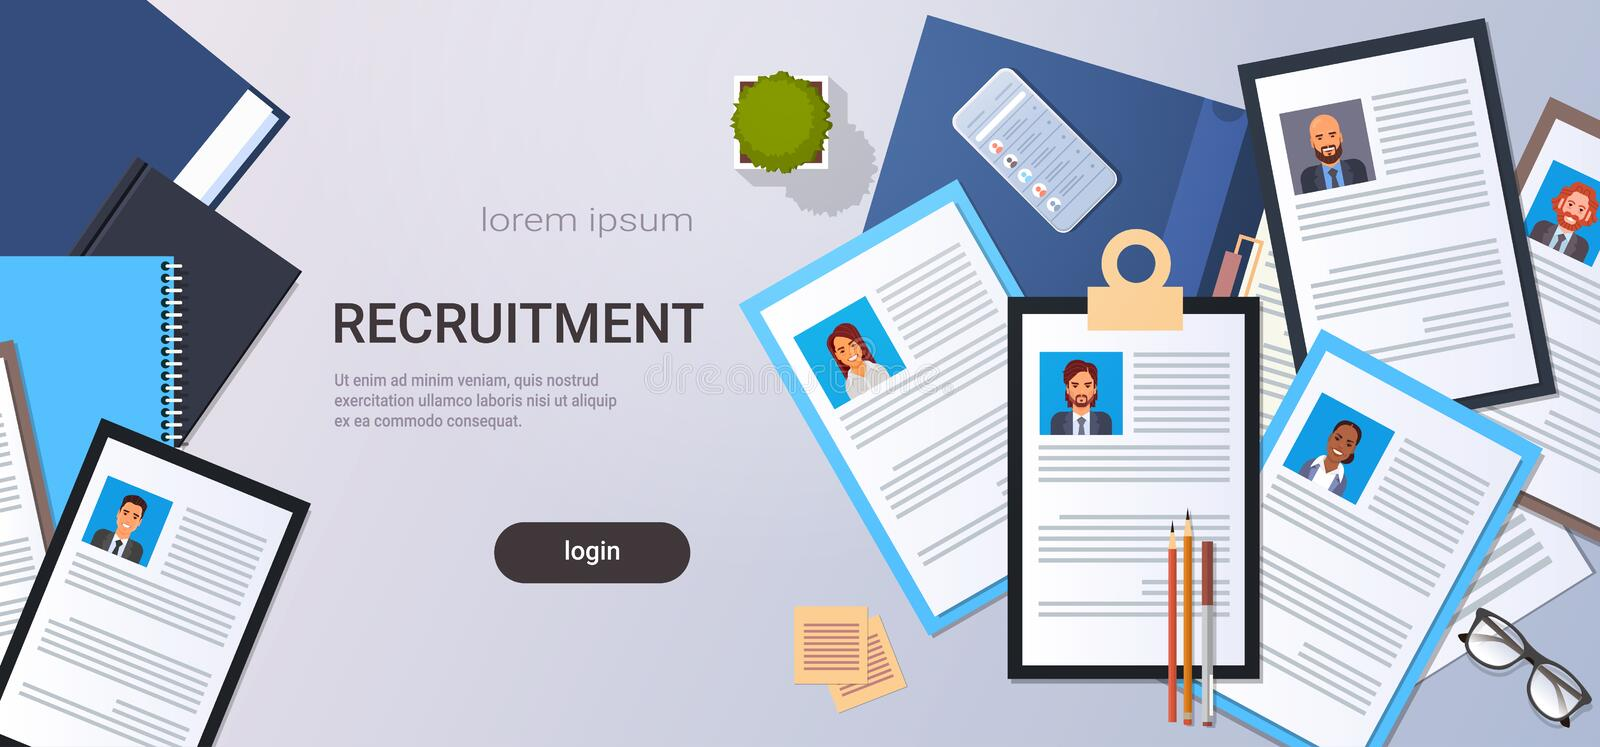 Curriculum vitae recruitment candidate job position cv profile top angle view workplace desktop smartphone business. People contact list resume copy space stock illustration